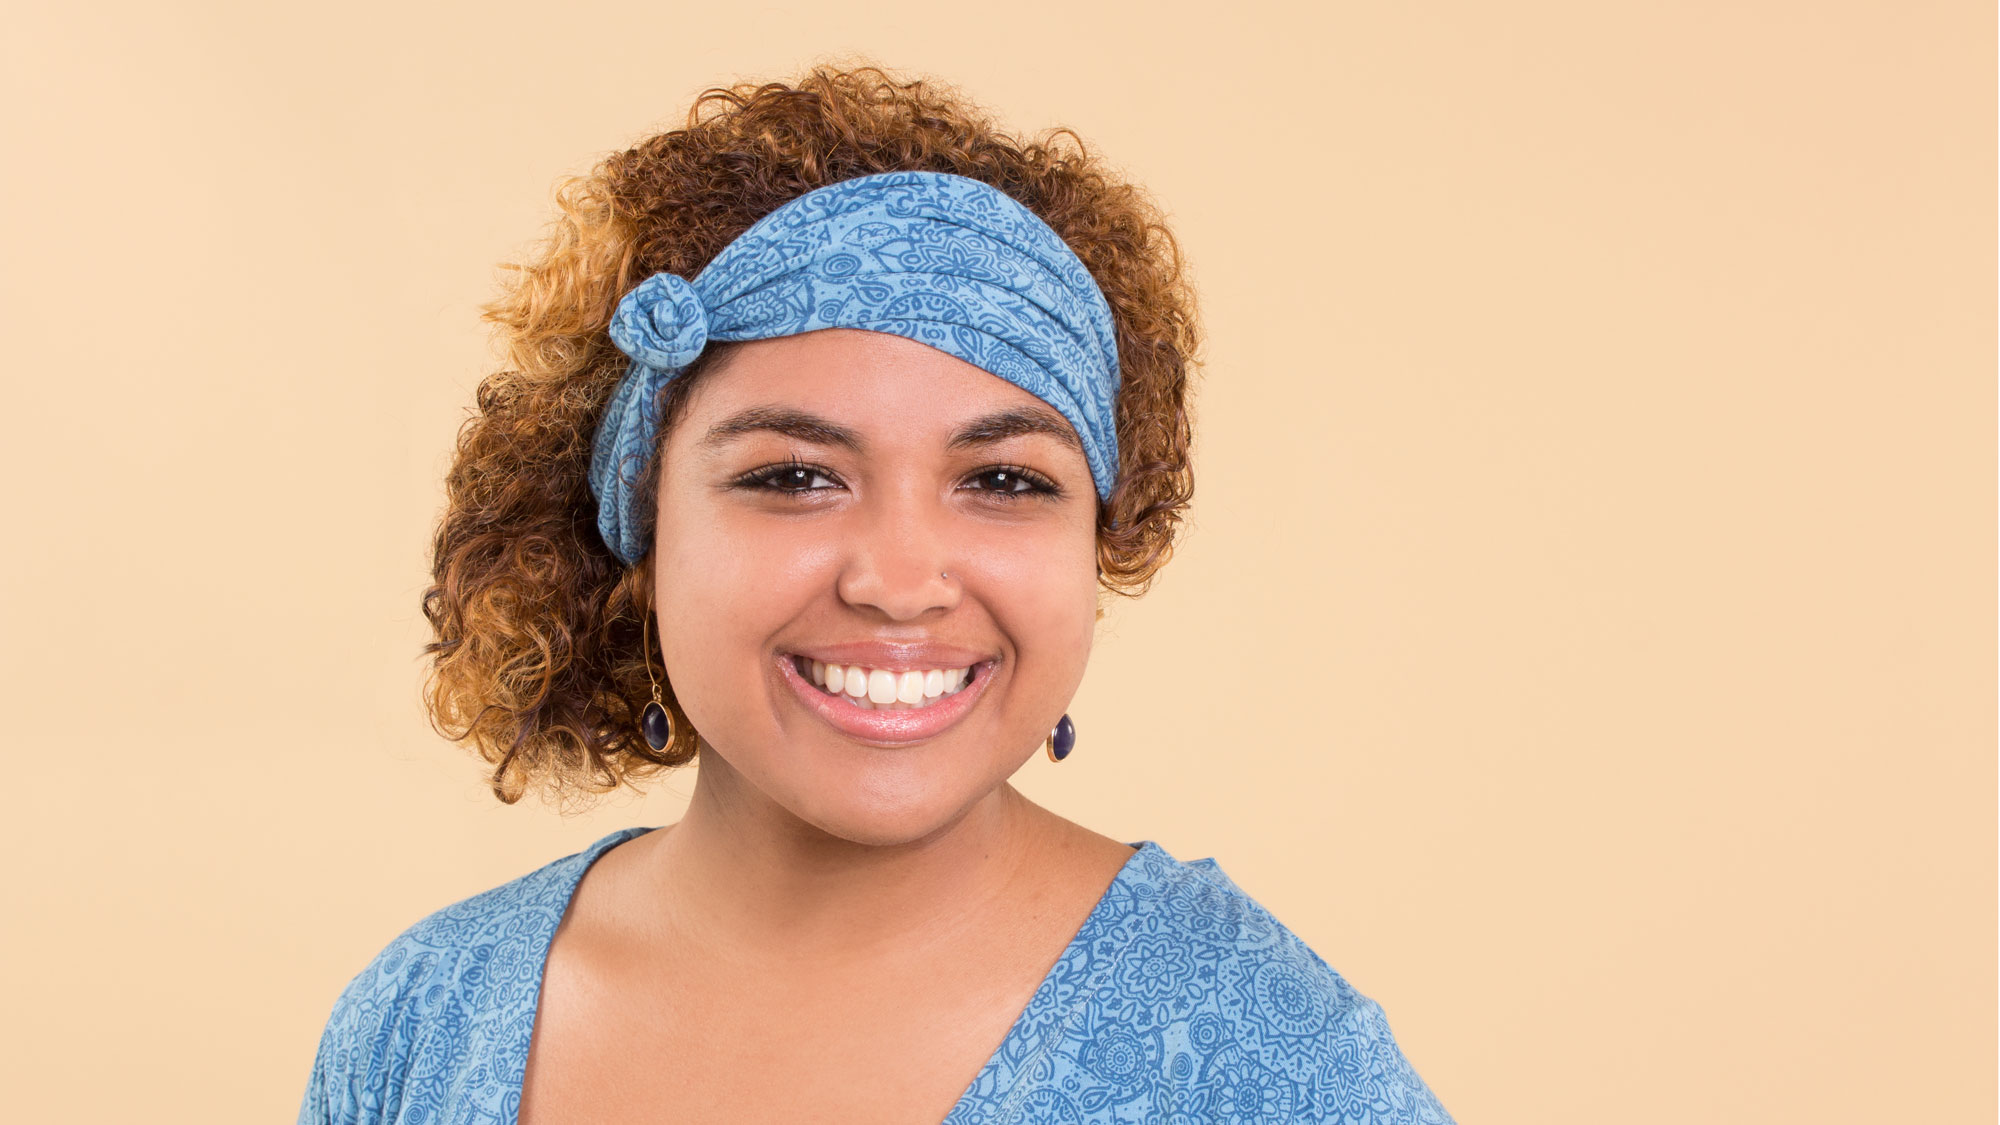 how to wear boho bandeau 9 - 7 Ways to Wear Boho Bandeau Headbands